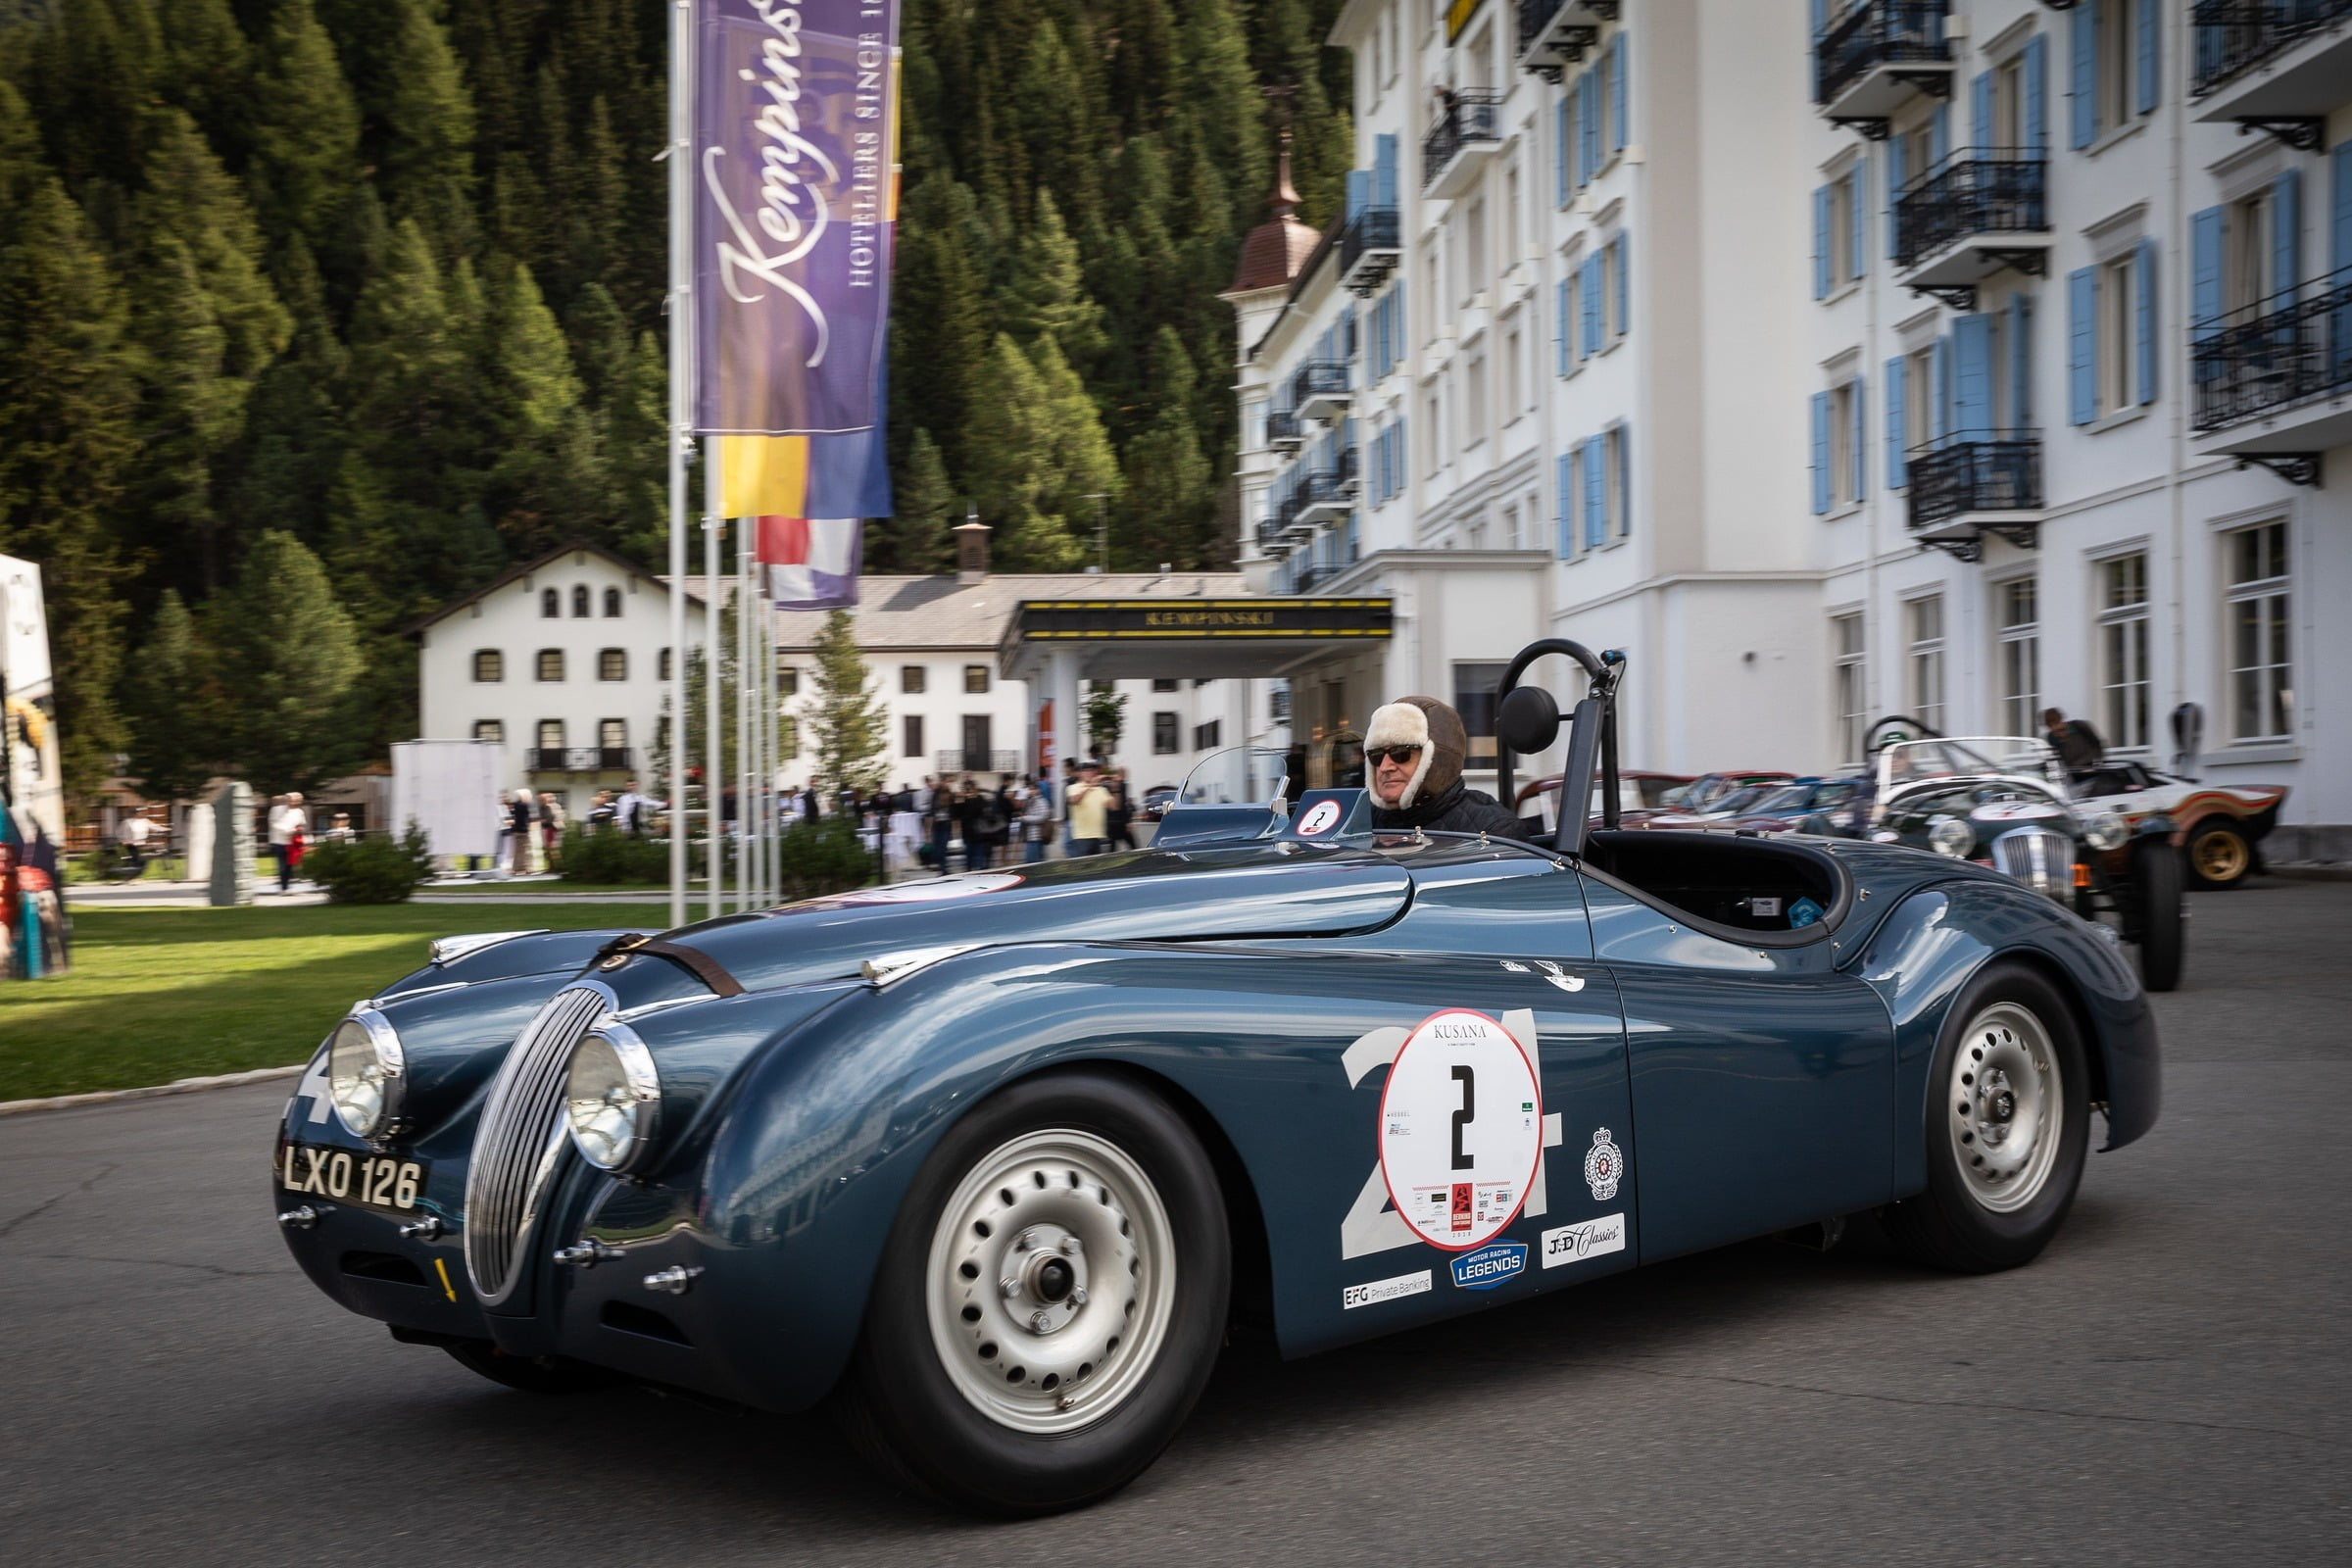 Iconic Events in St. Moritz